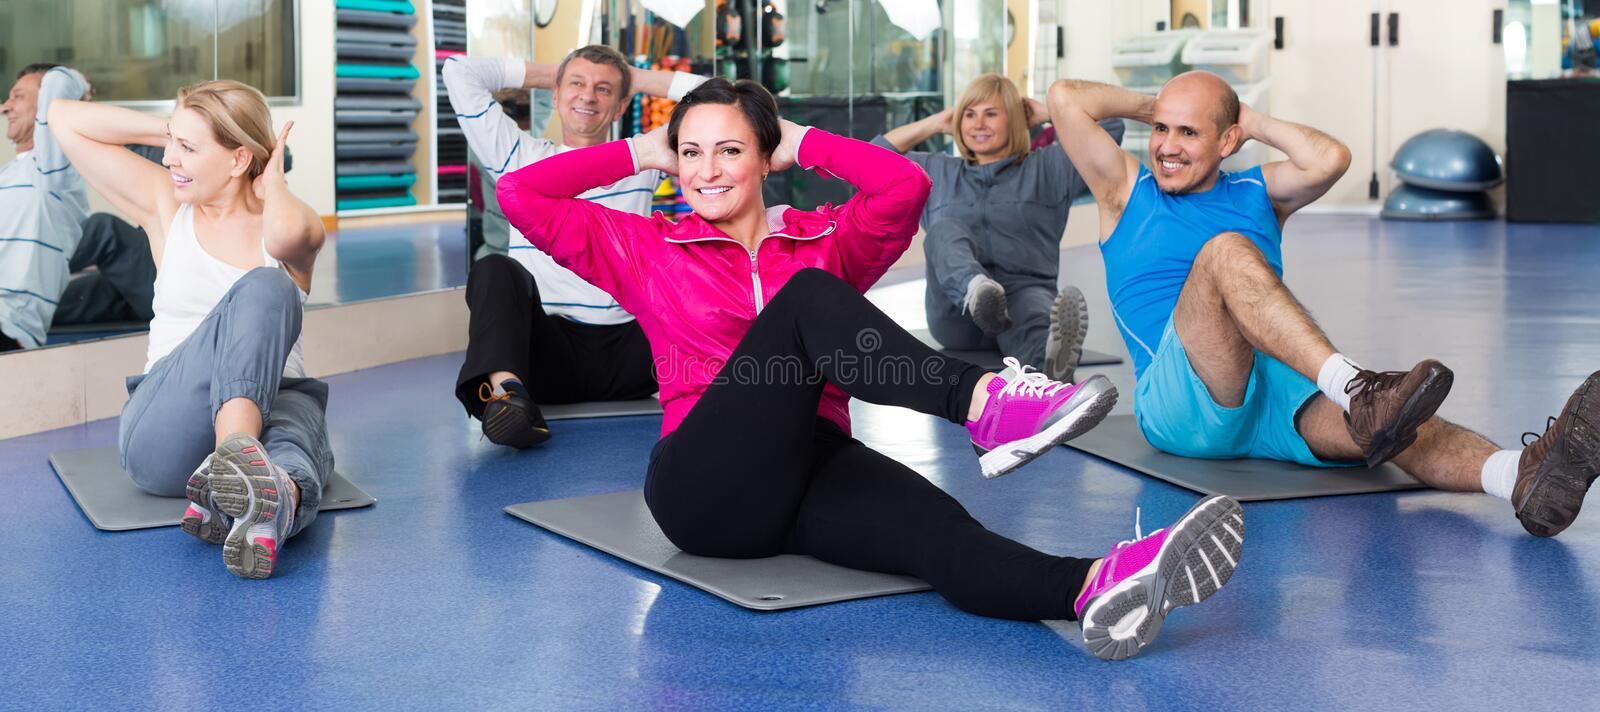 People training in a gym on sport mats royalty free stock photography